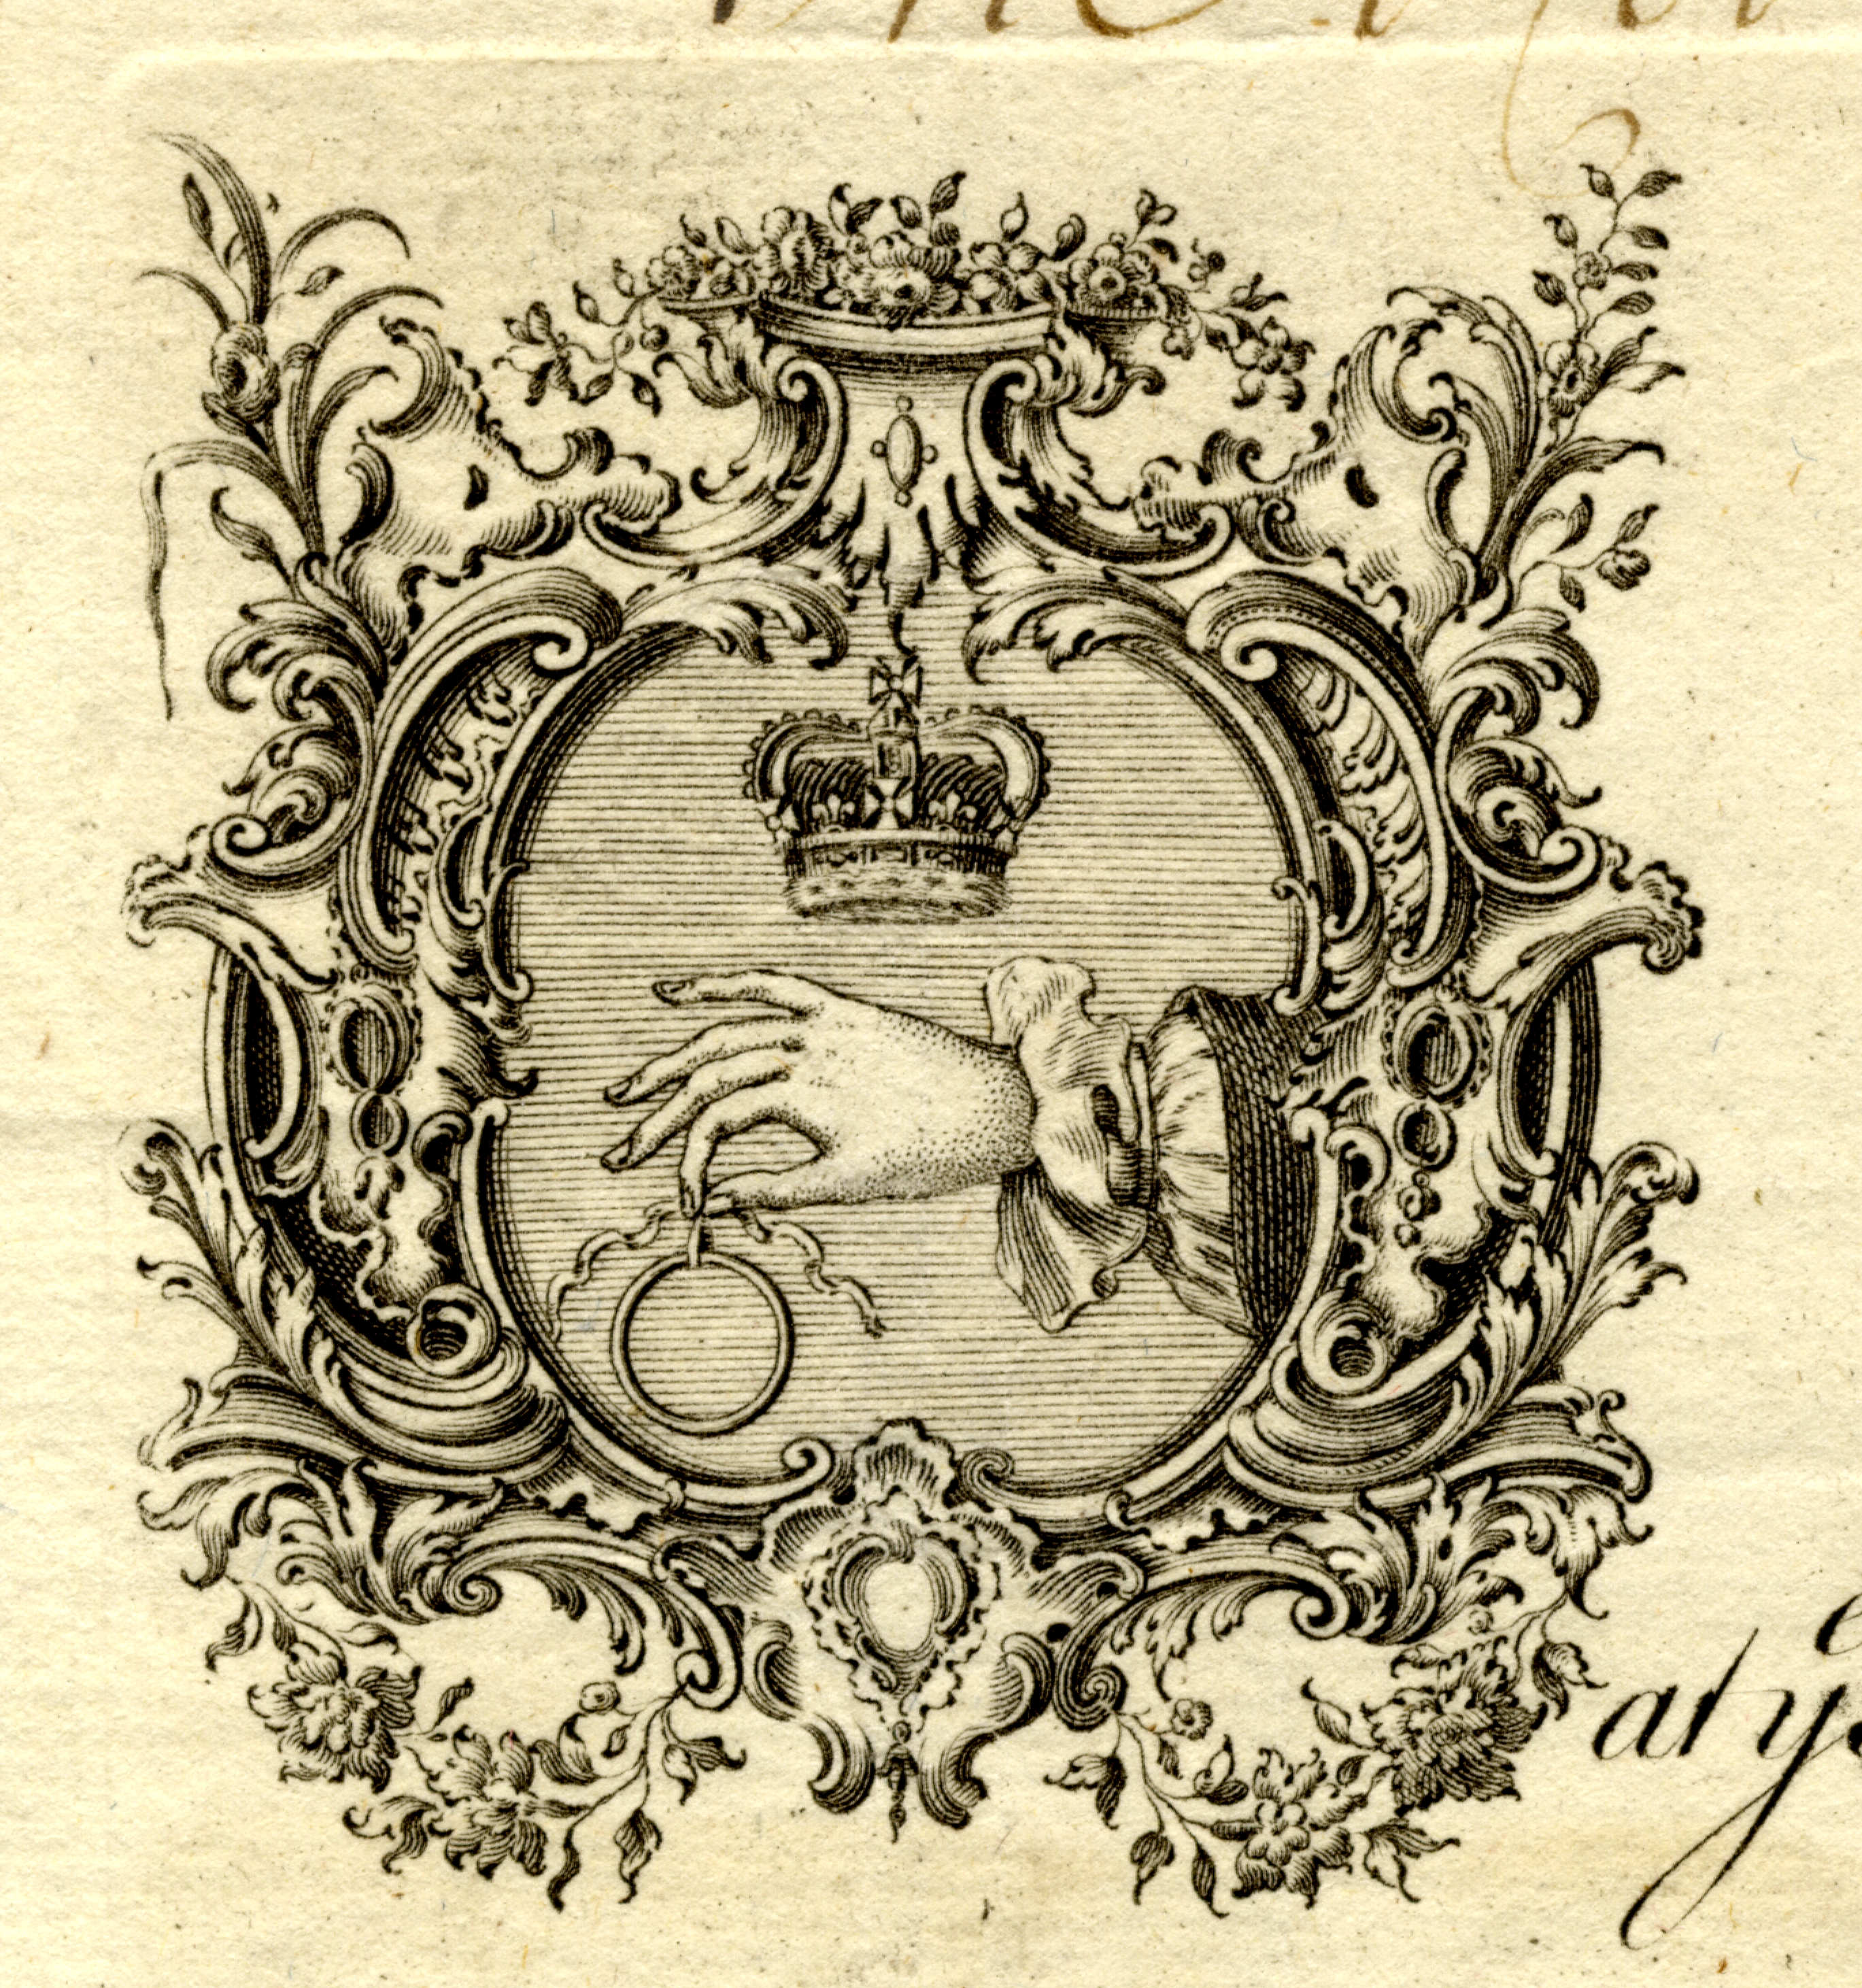 Crest of Elizabeth Godfrey - at the Hand Ring & Crown in Norris St., St James's, Haymarket (detail of previous receipt).